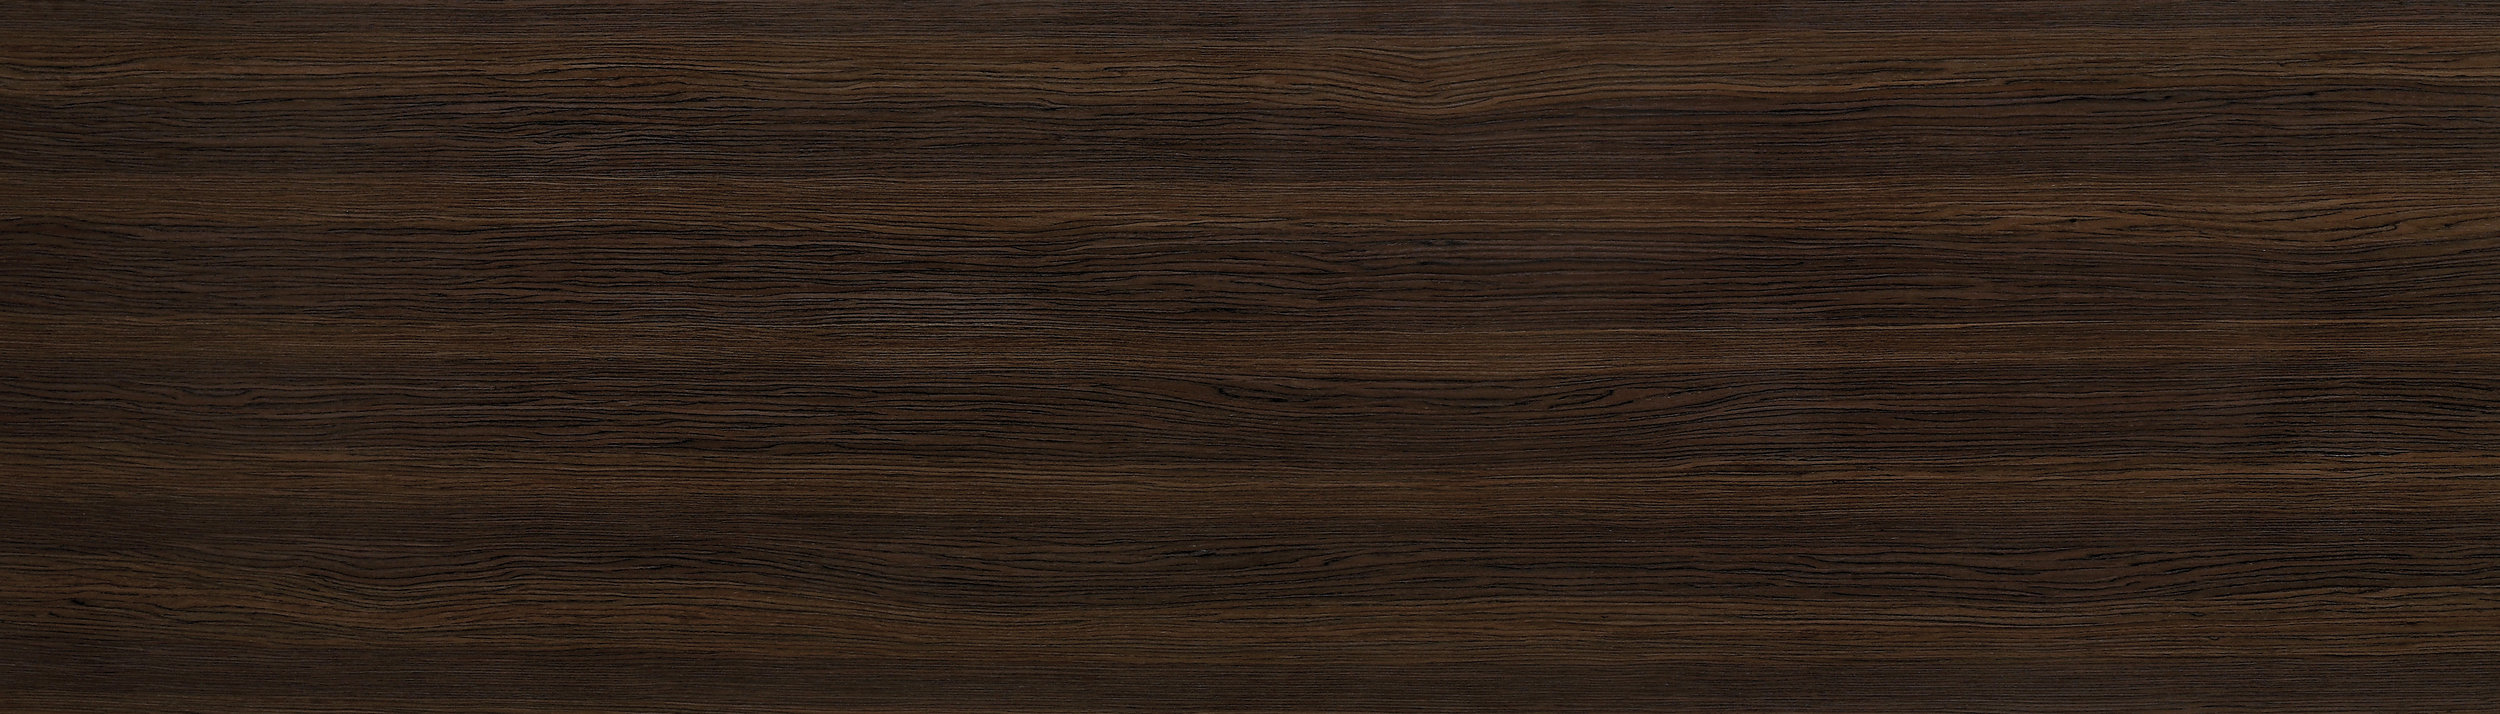 Dub 10.85 Smoked Oak.jpg